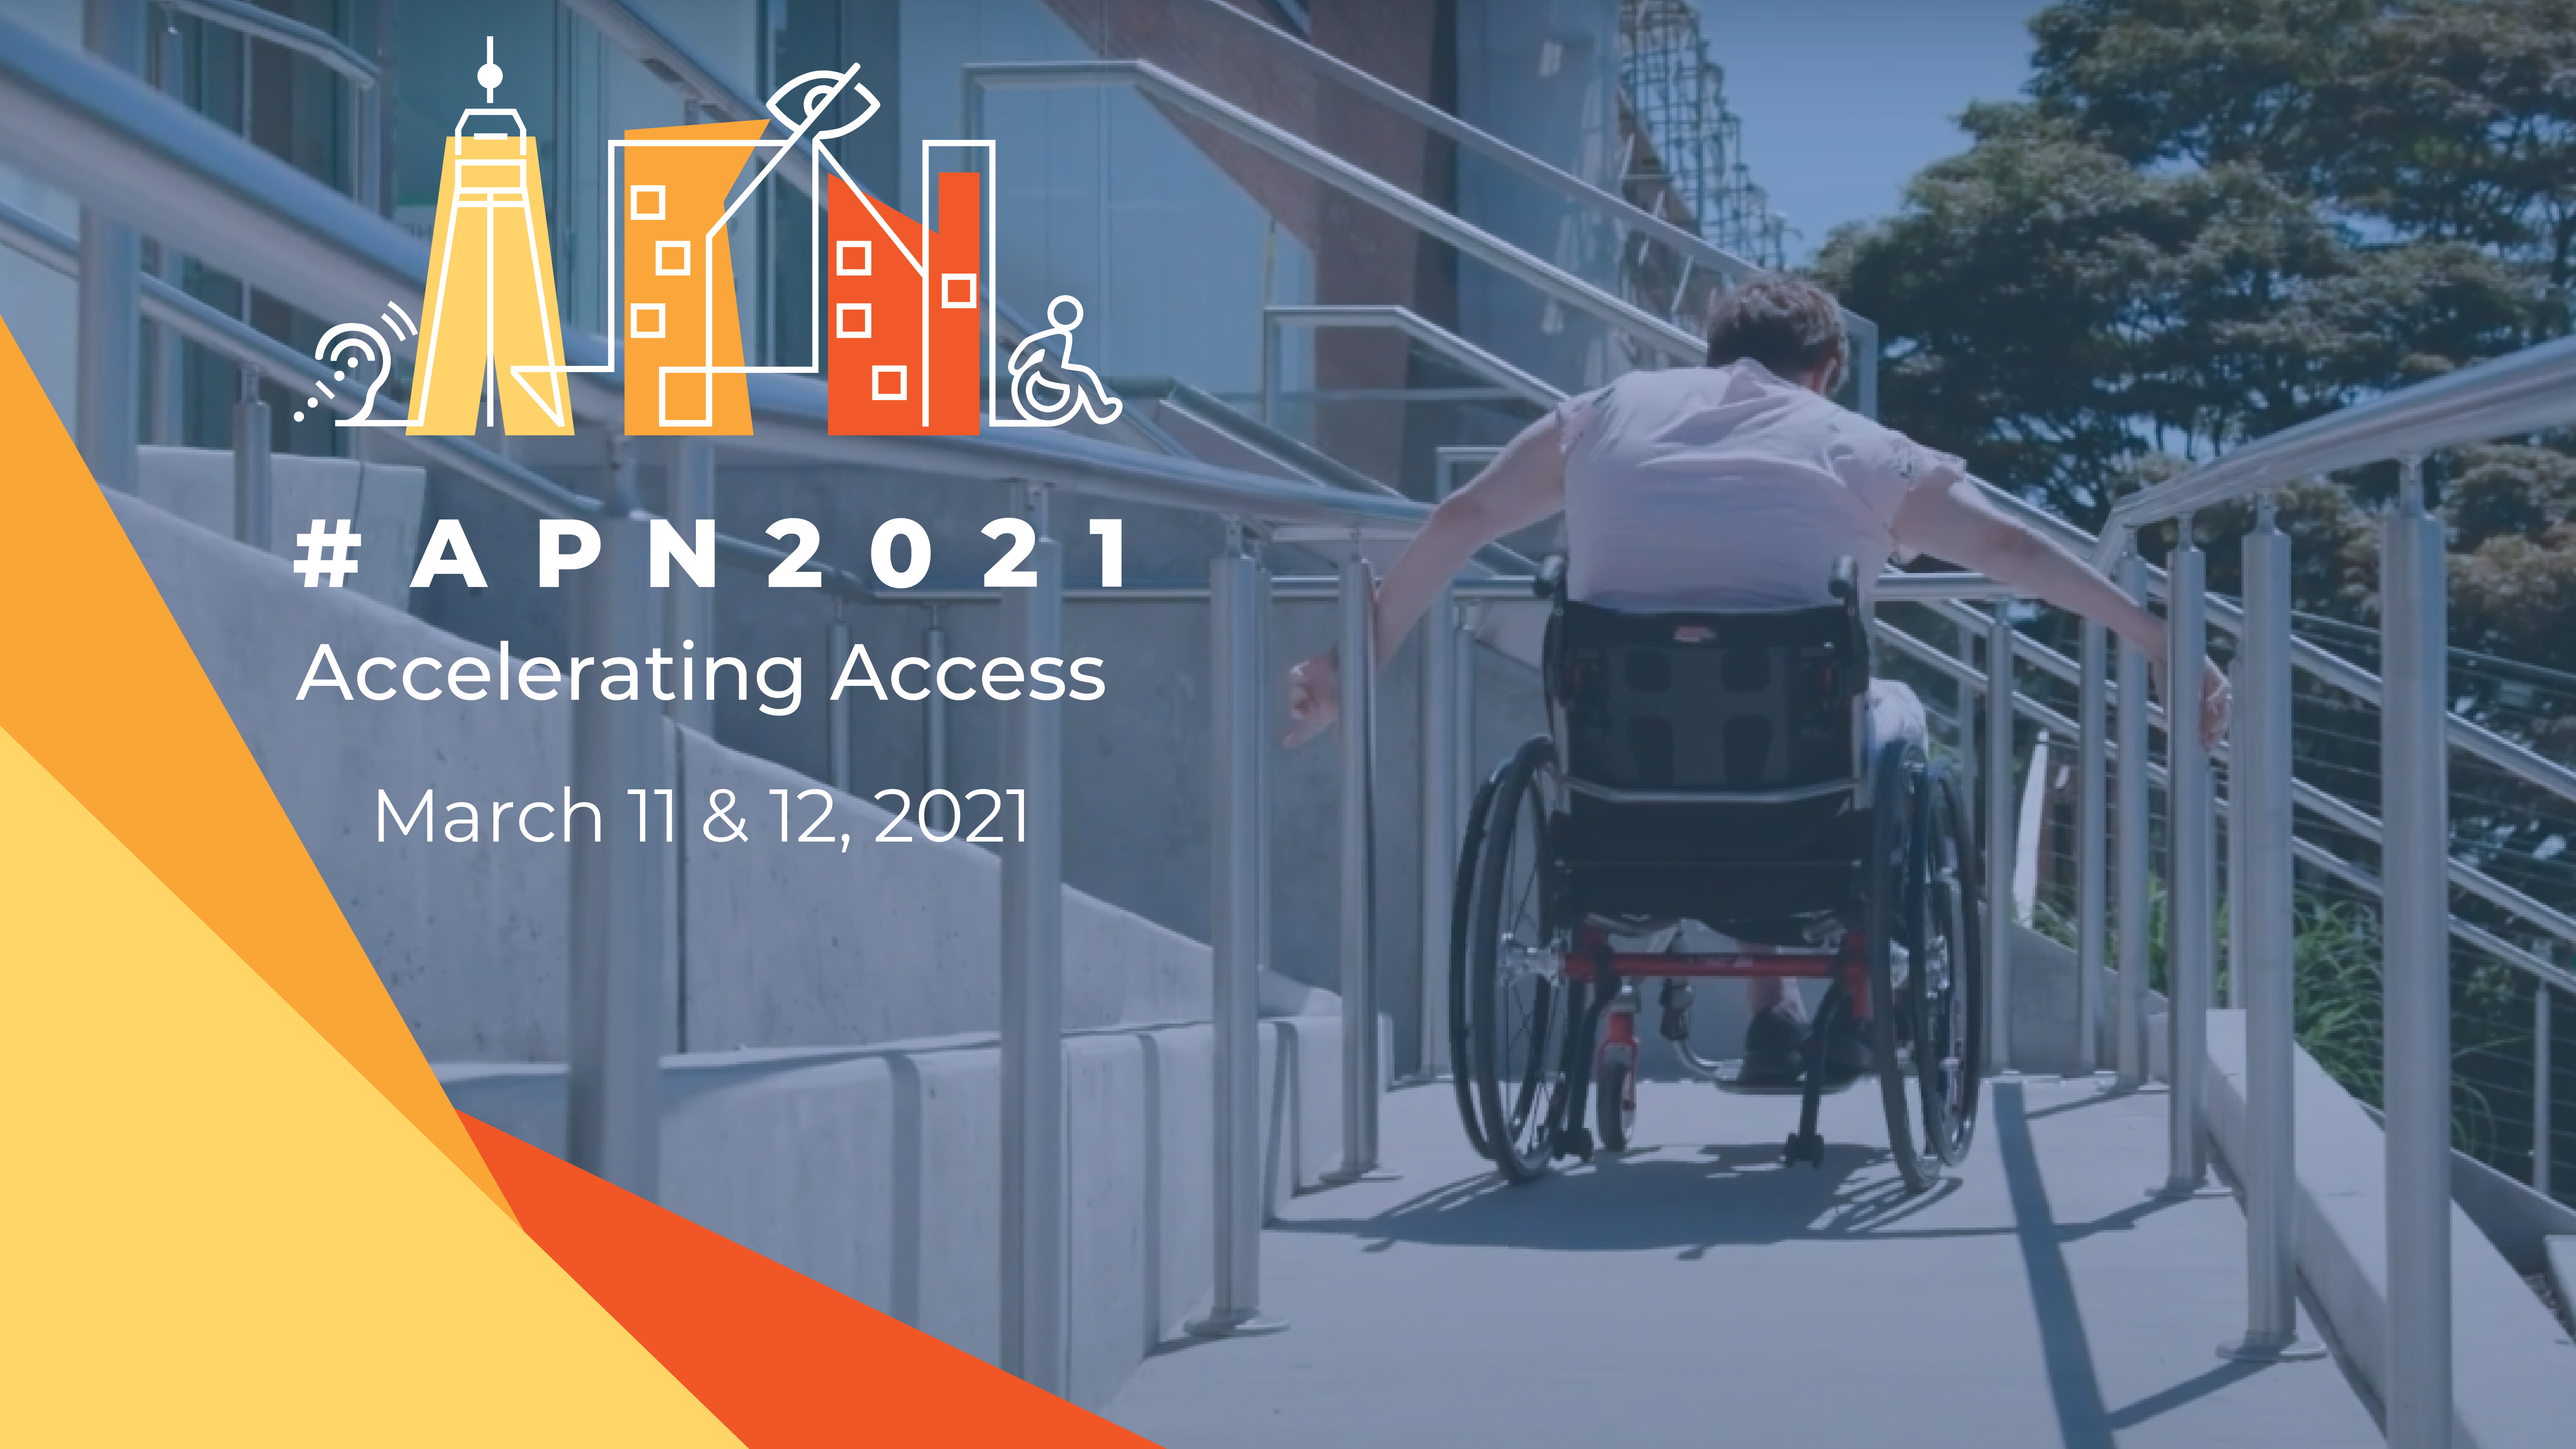 #APN2021 Accelerating Access March 11-12, 2021, woman going up steep ramp using wheelchair